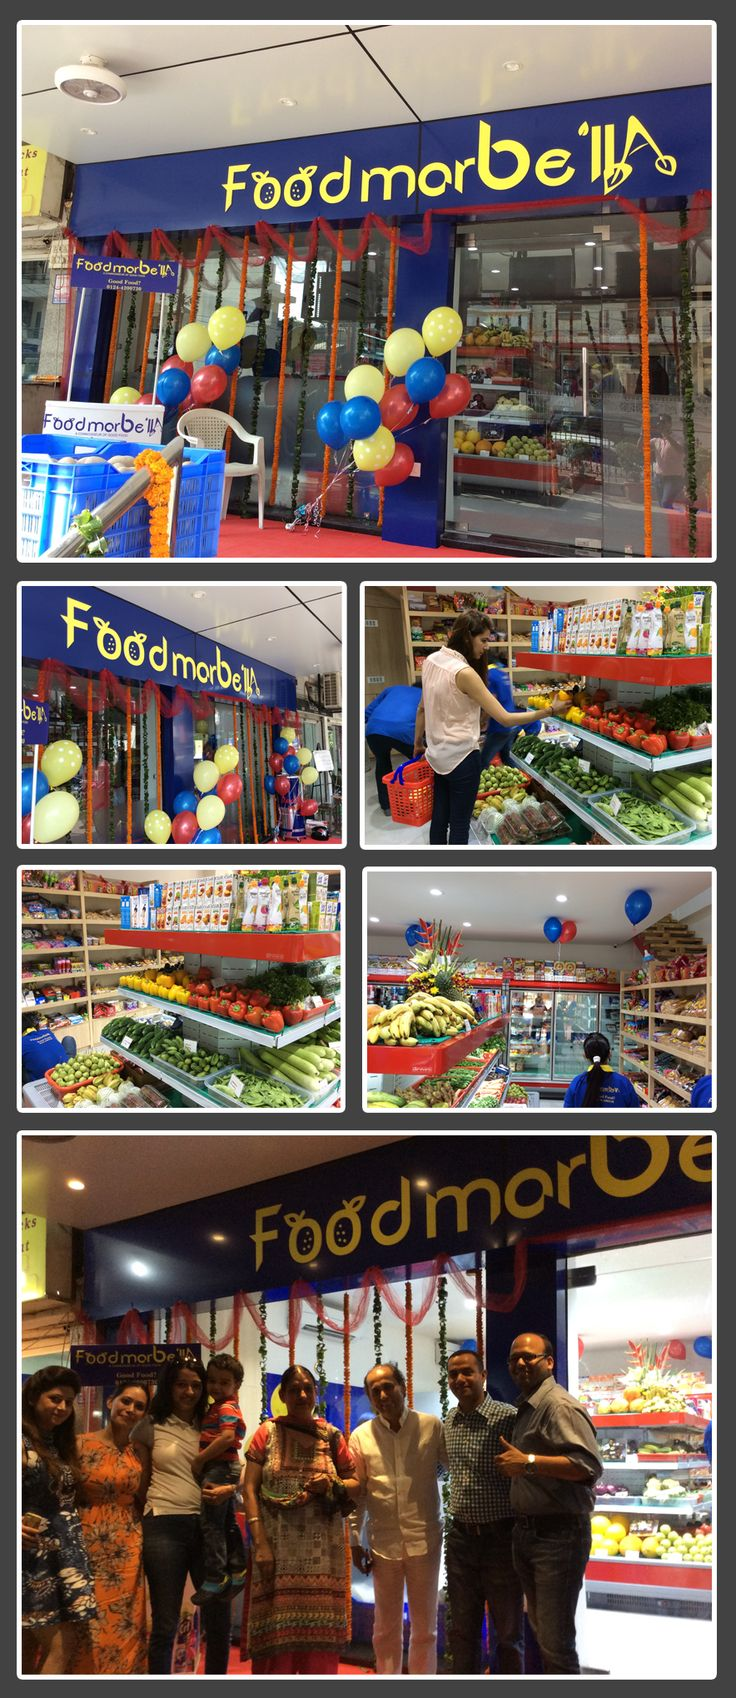 Hello friends, the sneak preview of the day 1, #groceryshopping fun at  #FodMarbella .  #AskMarbella for the best tasting  #gourmet #food . Thanks to all our happy customers to help us make this happen.  #Gurgaon